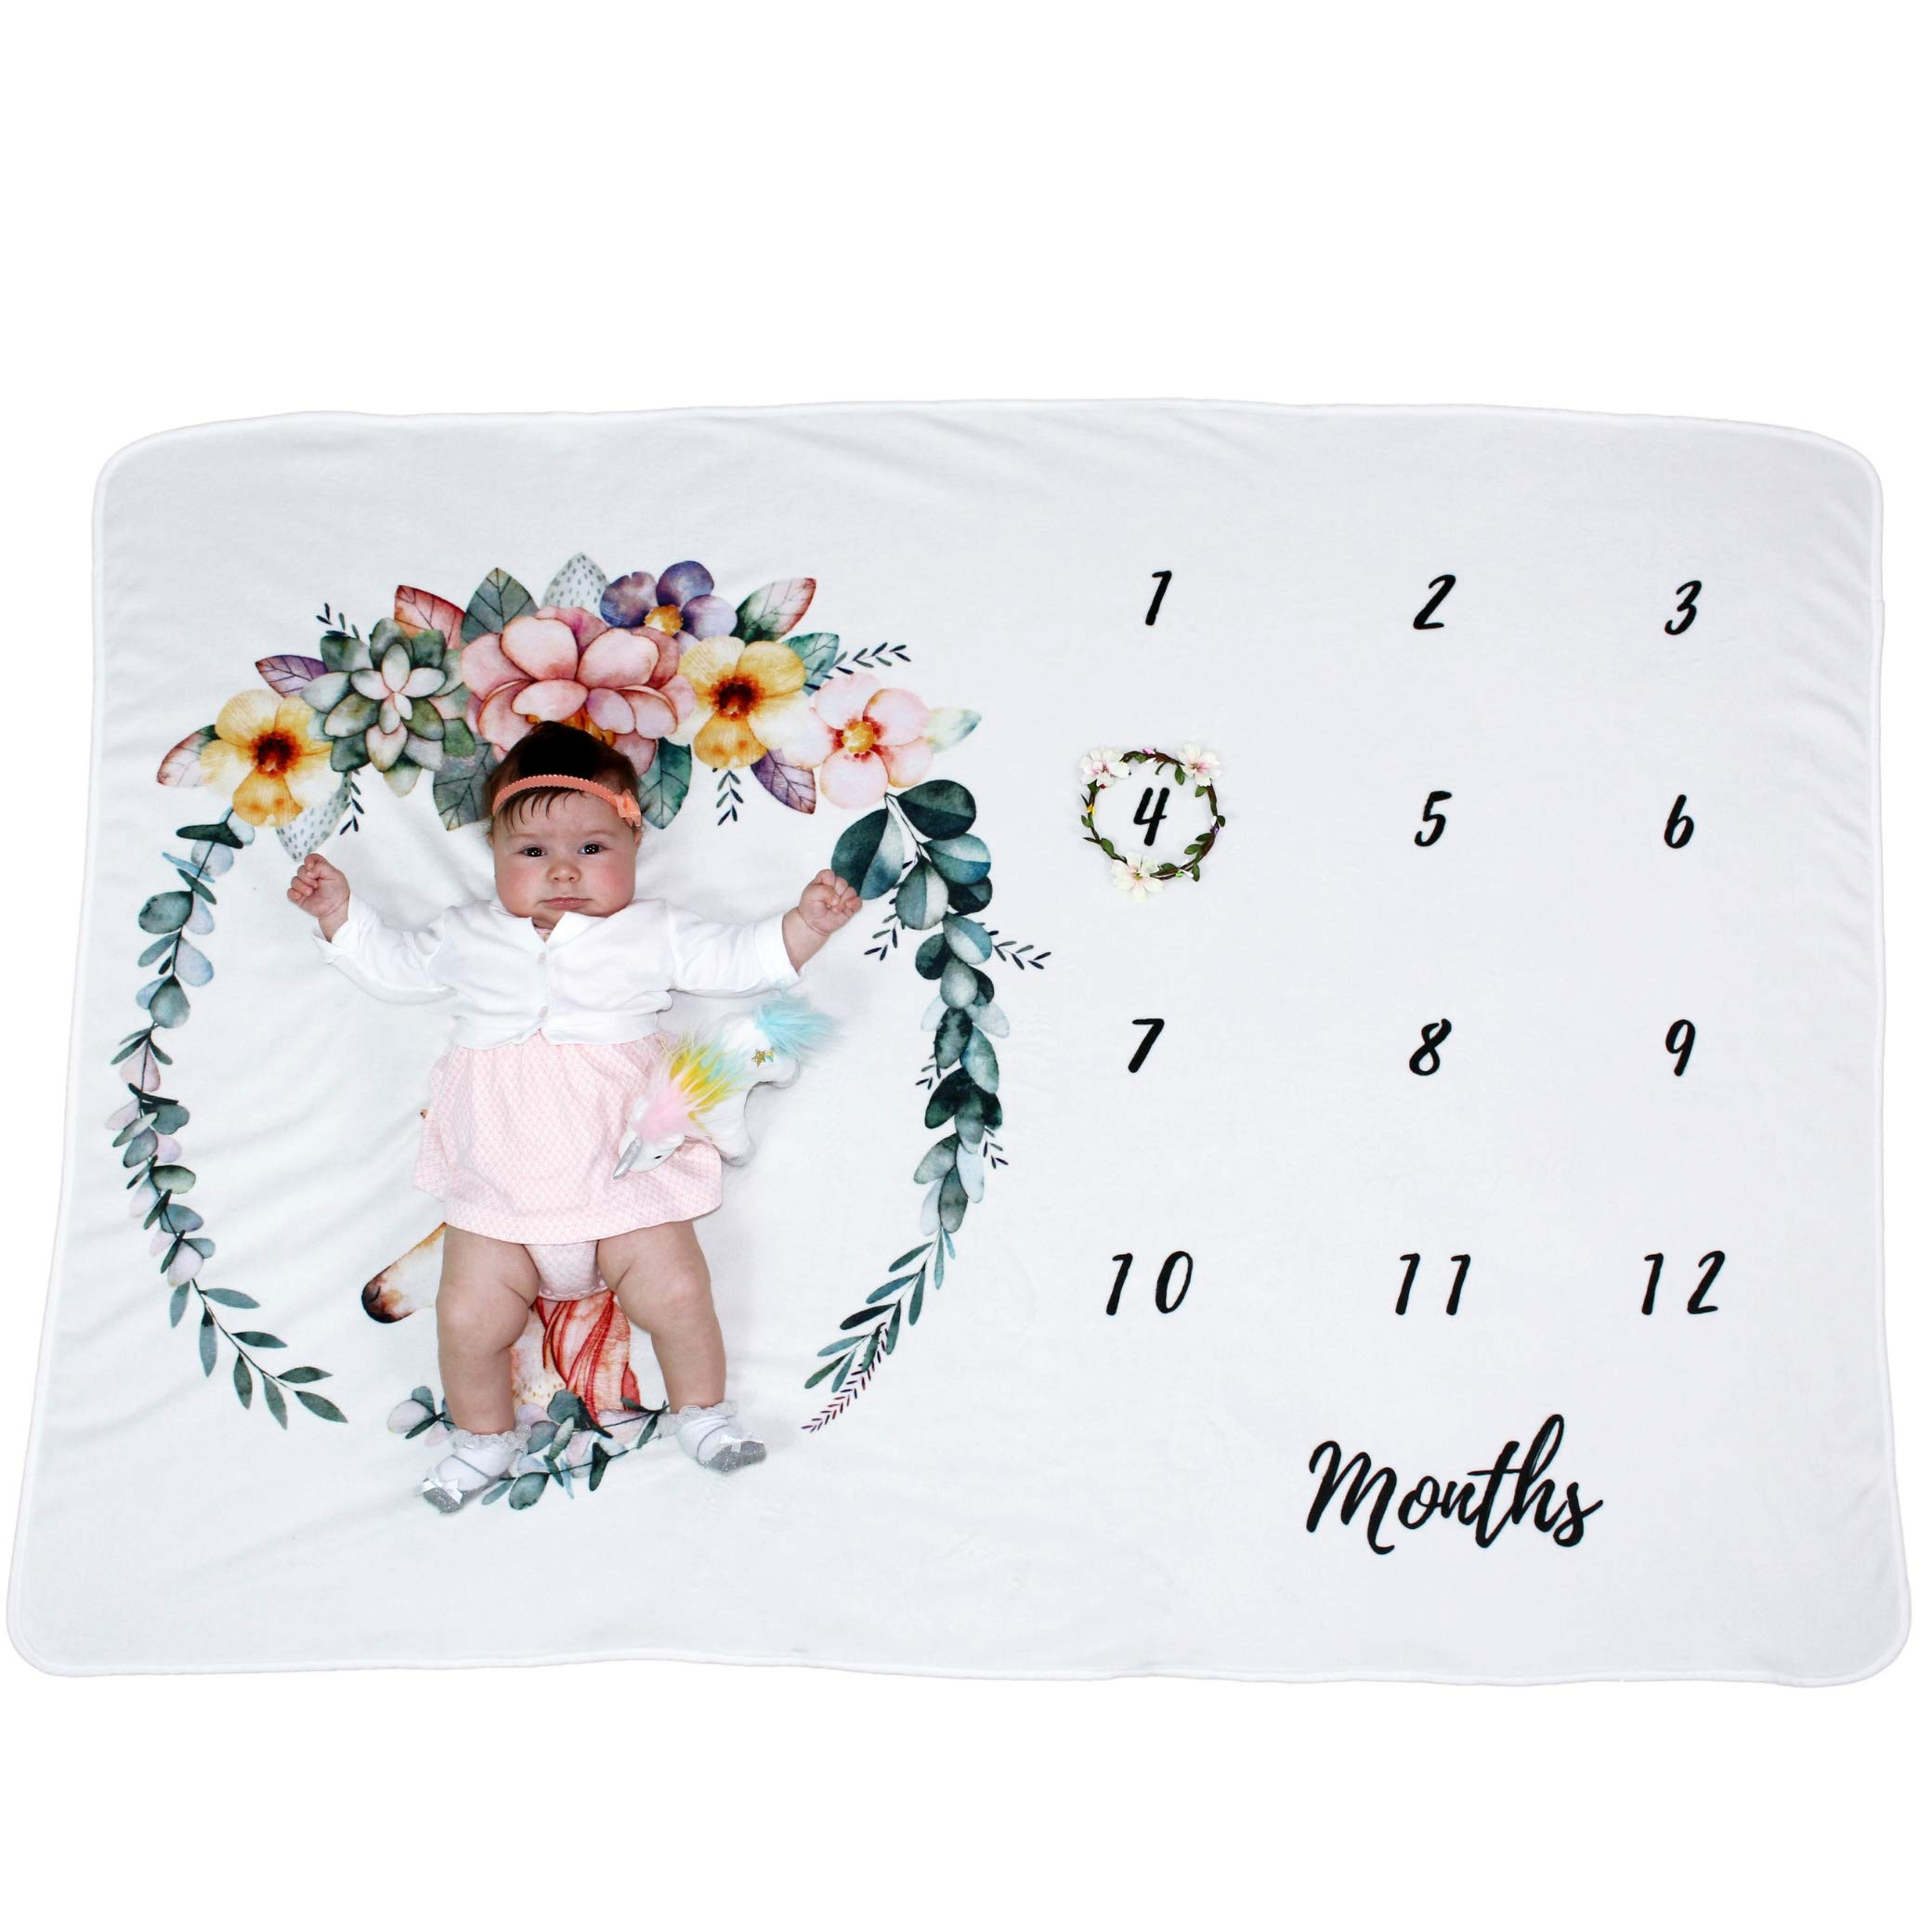 Summit One Baby Monthly Milestone Blanket with Unicorn Design, 1-12 Months (60 x 40 Inch) - Includes Flower Wreath Photography Prop - Large Super-Soft Fleece Newborn Backdrop Blankets for Baby Girls